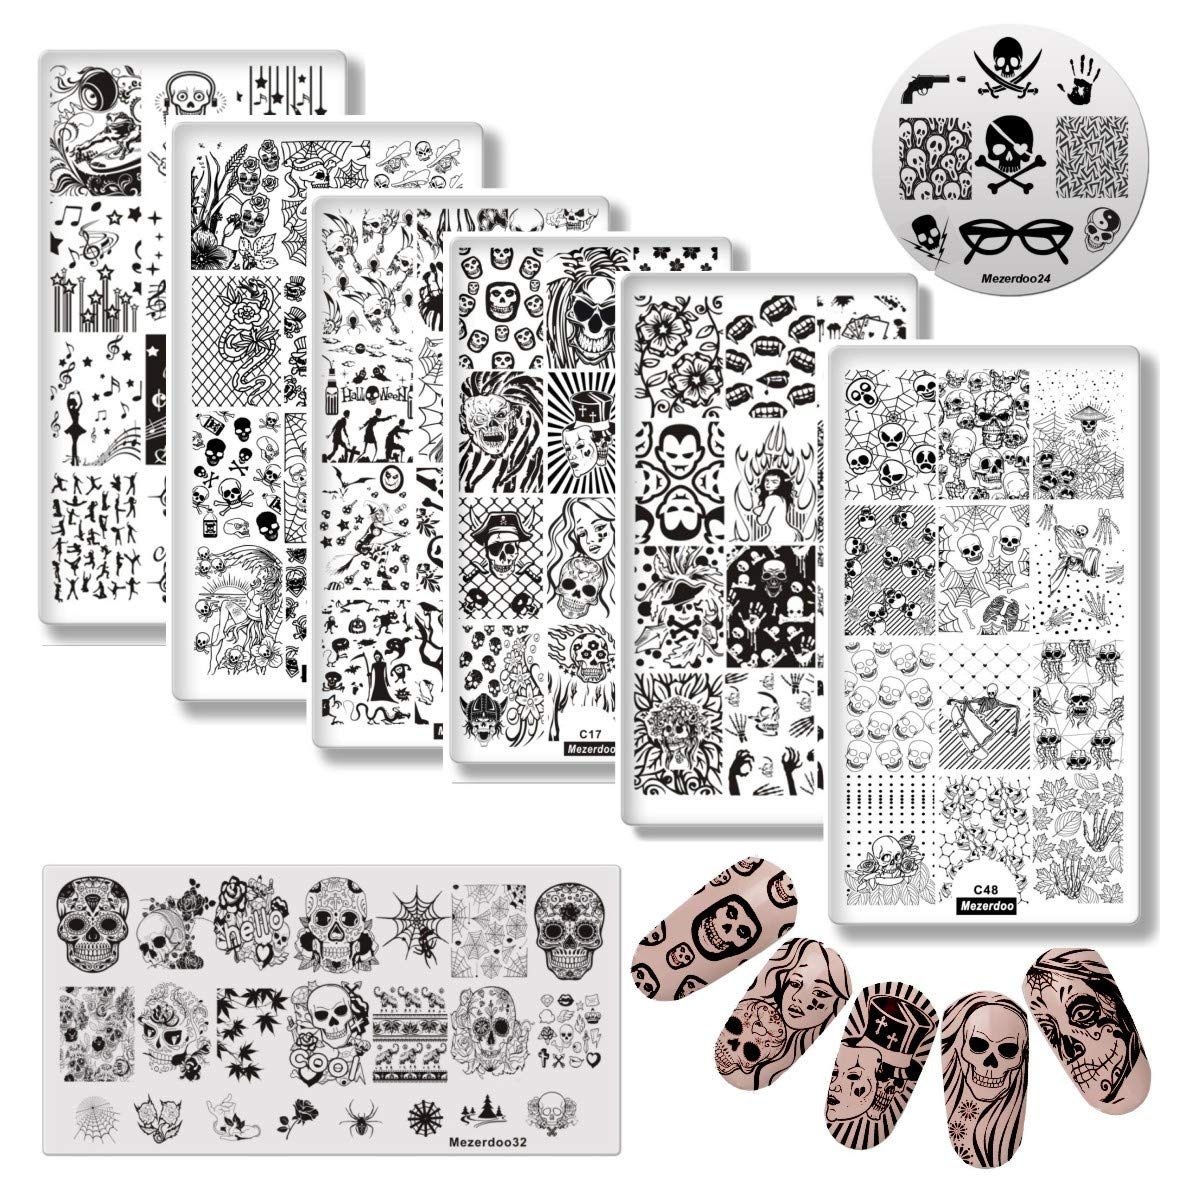 8pcs Halloween Nail Stamping Template Skull/Ghost/Bat/Death Patterns DIY Nail Designs Manicure Stamp Plate Festival Nails Stencil Pumpkin/Vampire Nail Art Image Plates Mezerdoo